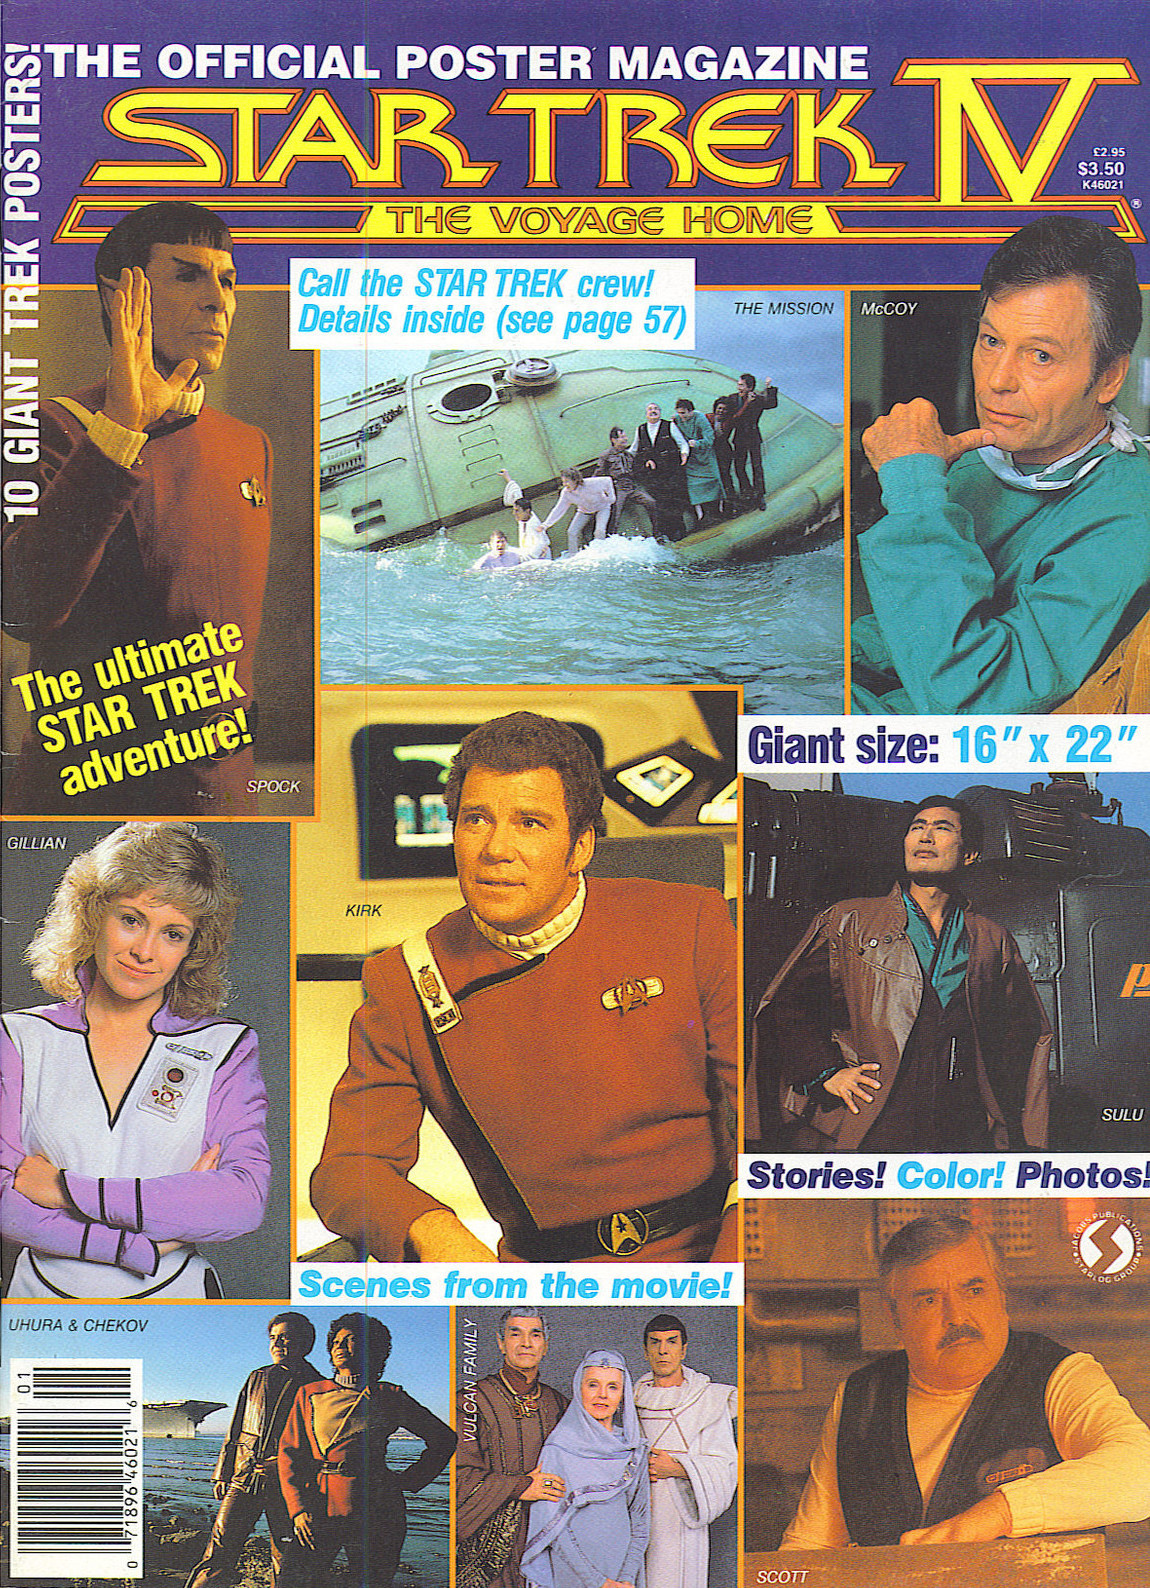 Star Trek IV: The Voyage Home - The Official Poster ...